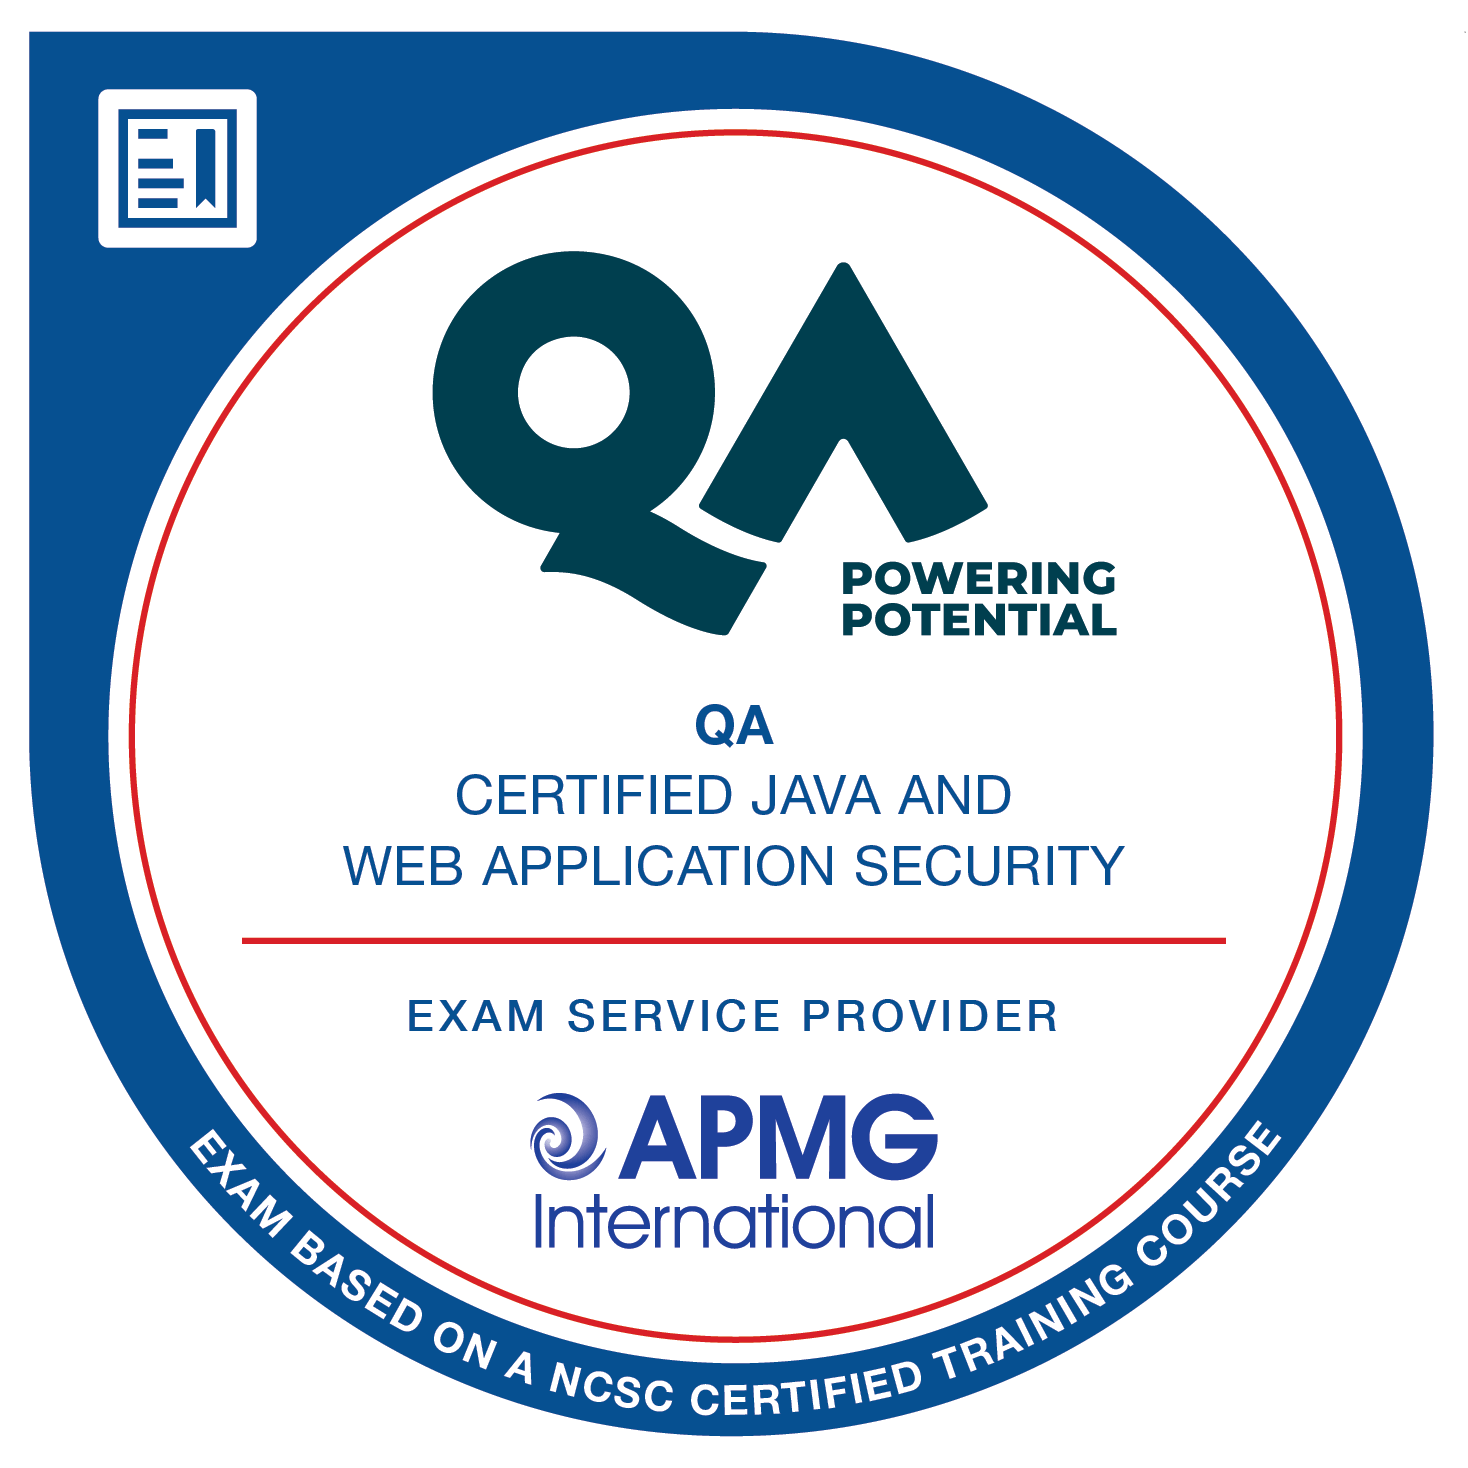 Certified Java and Web application security